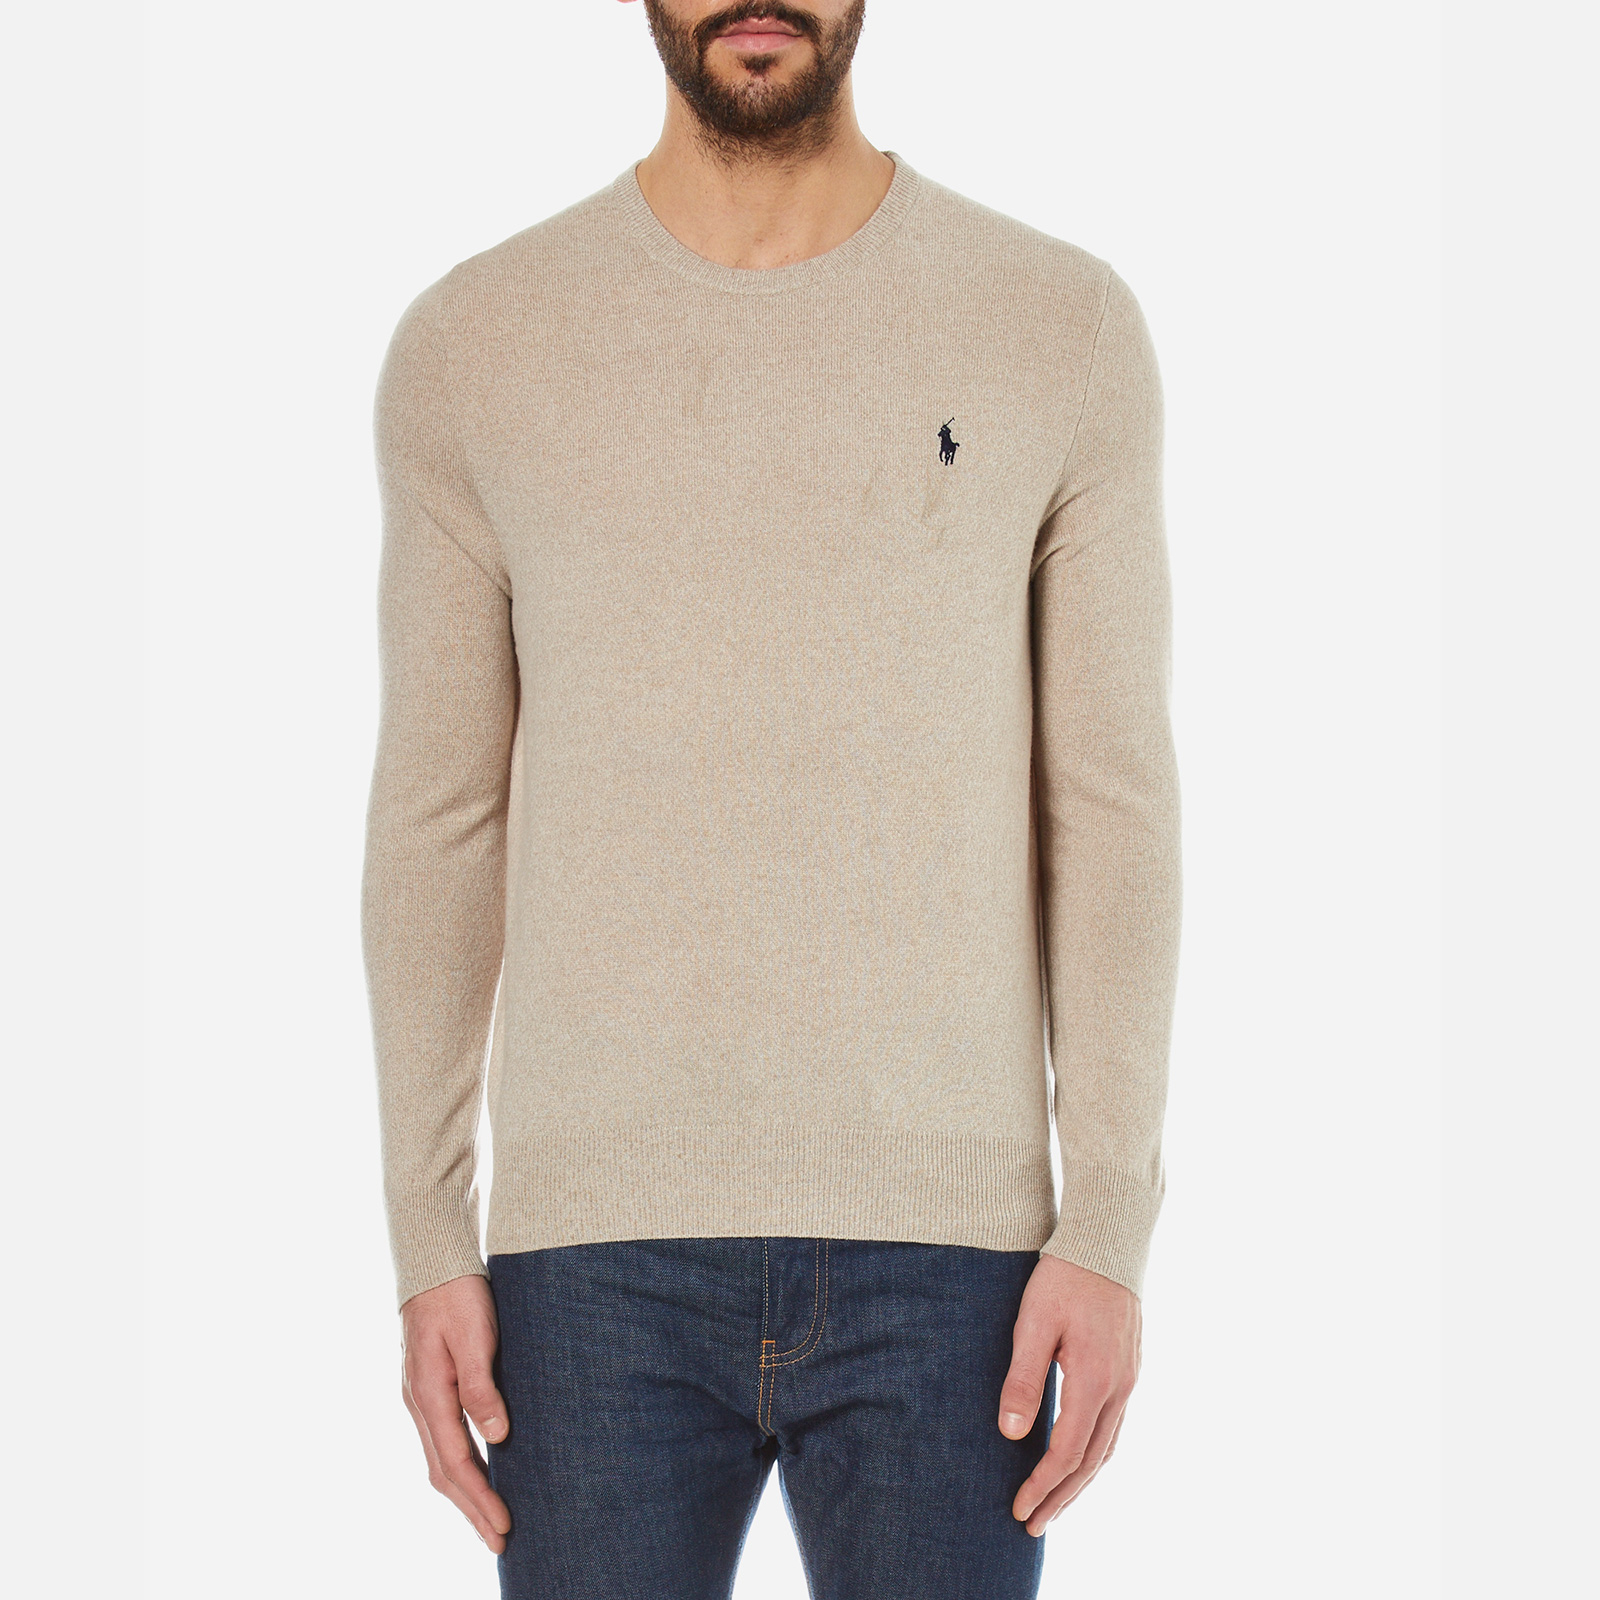 2e733897 Polo Ralph Lauren Men's Crew Neck Merino Wool Knitted Jumper - Oatmeal -  Free UK Delivery over £50